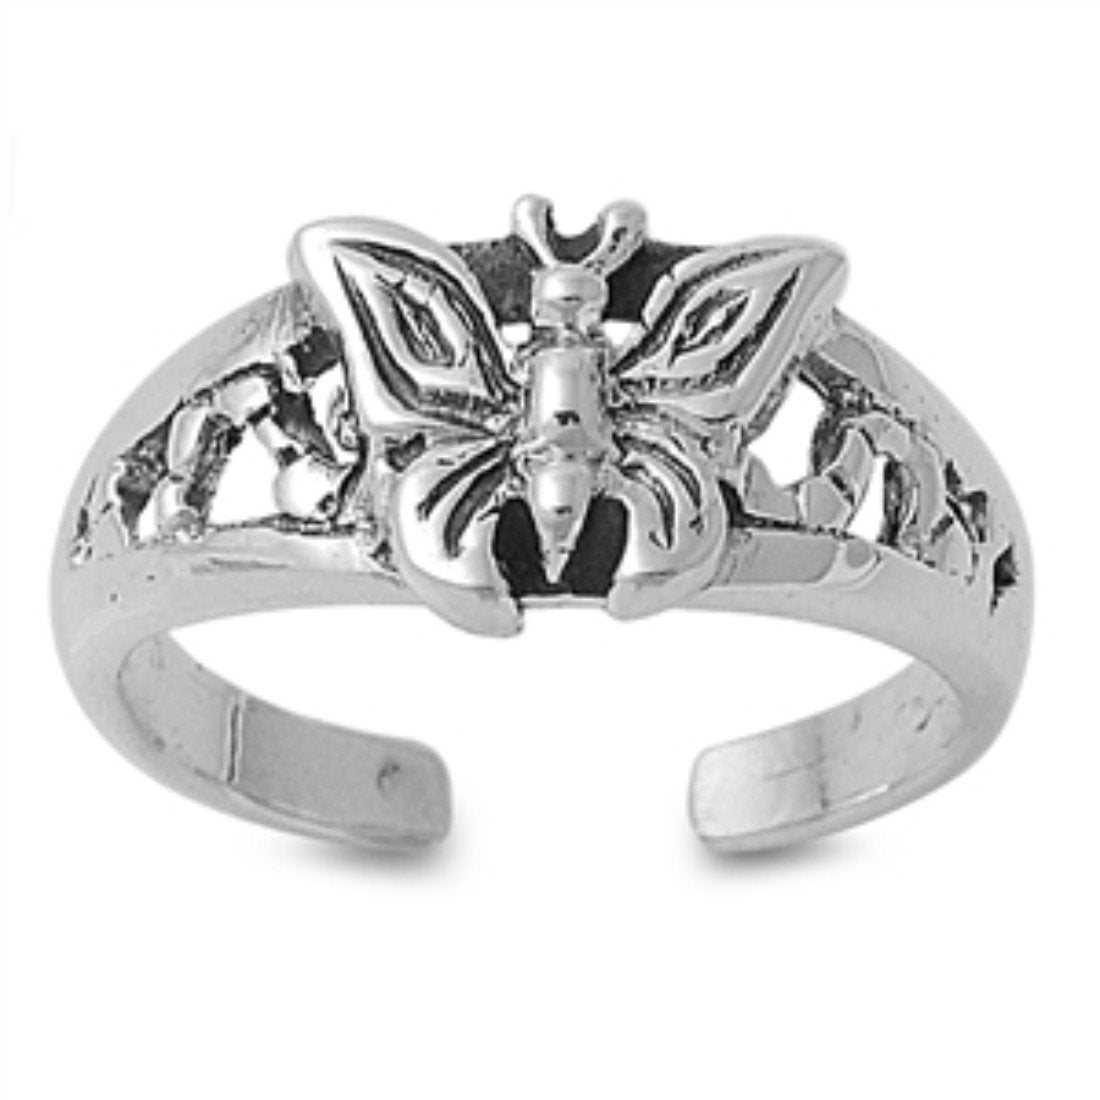 Adjustable Butterfly Silver Toe Ring Band 925 Sterling Silver (8mm)